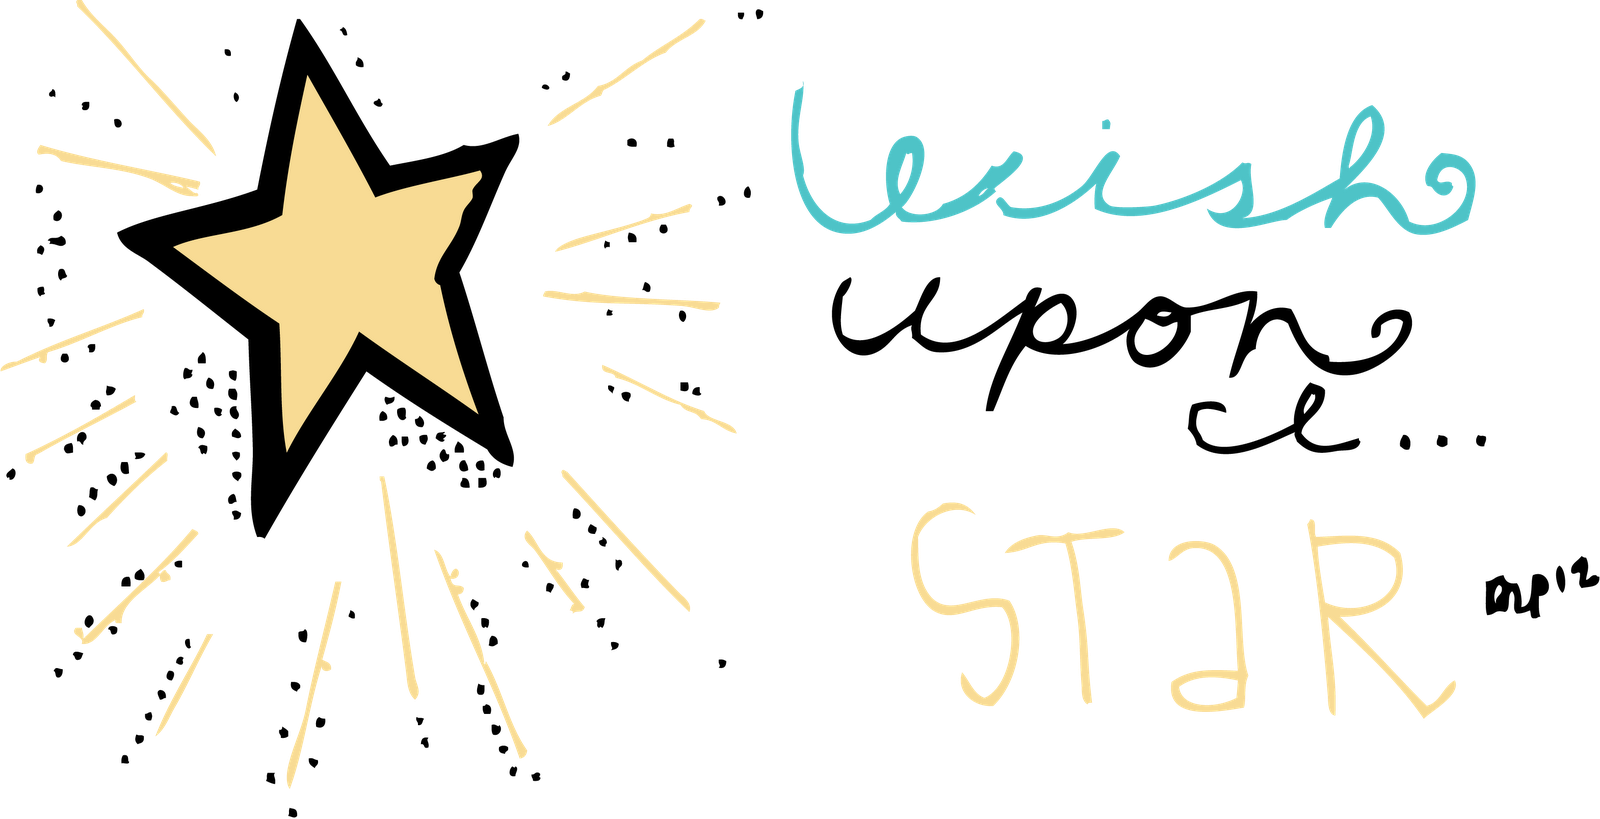 Wish Upon A Star Clipart #1 - Wish Upon A Star PNG